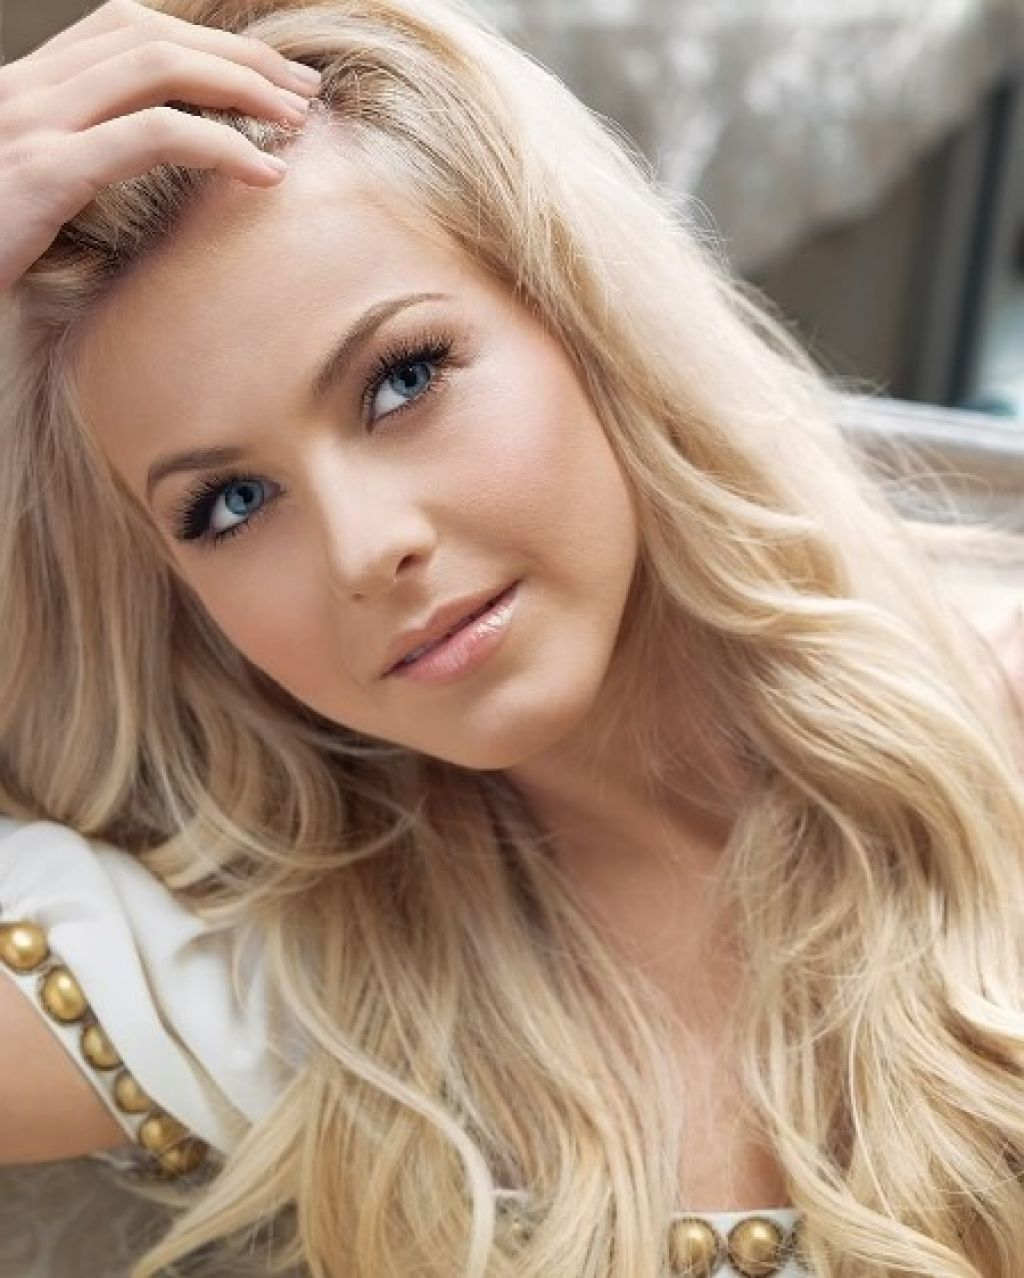 Hair Color Ideas For Blondes With Blue Eyes Best Hair Color For Summer Check More At Http Www Blonde Hair Pale Skin Blonde Hair Color Pale Skin Hair Color